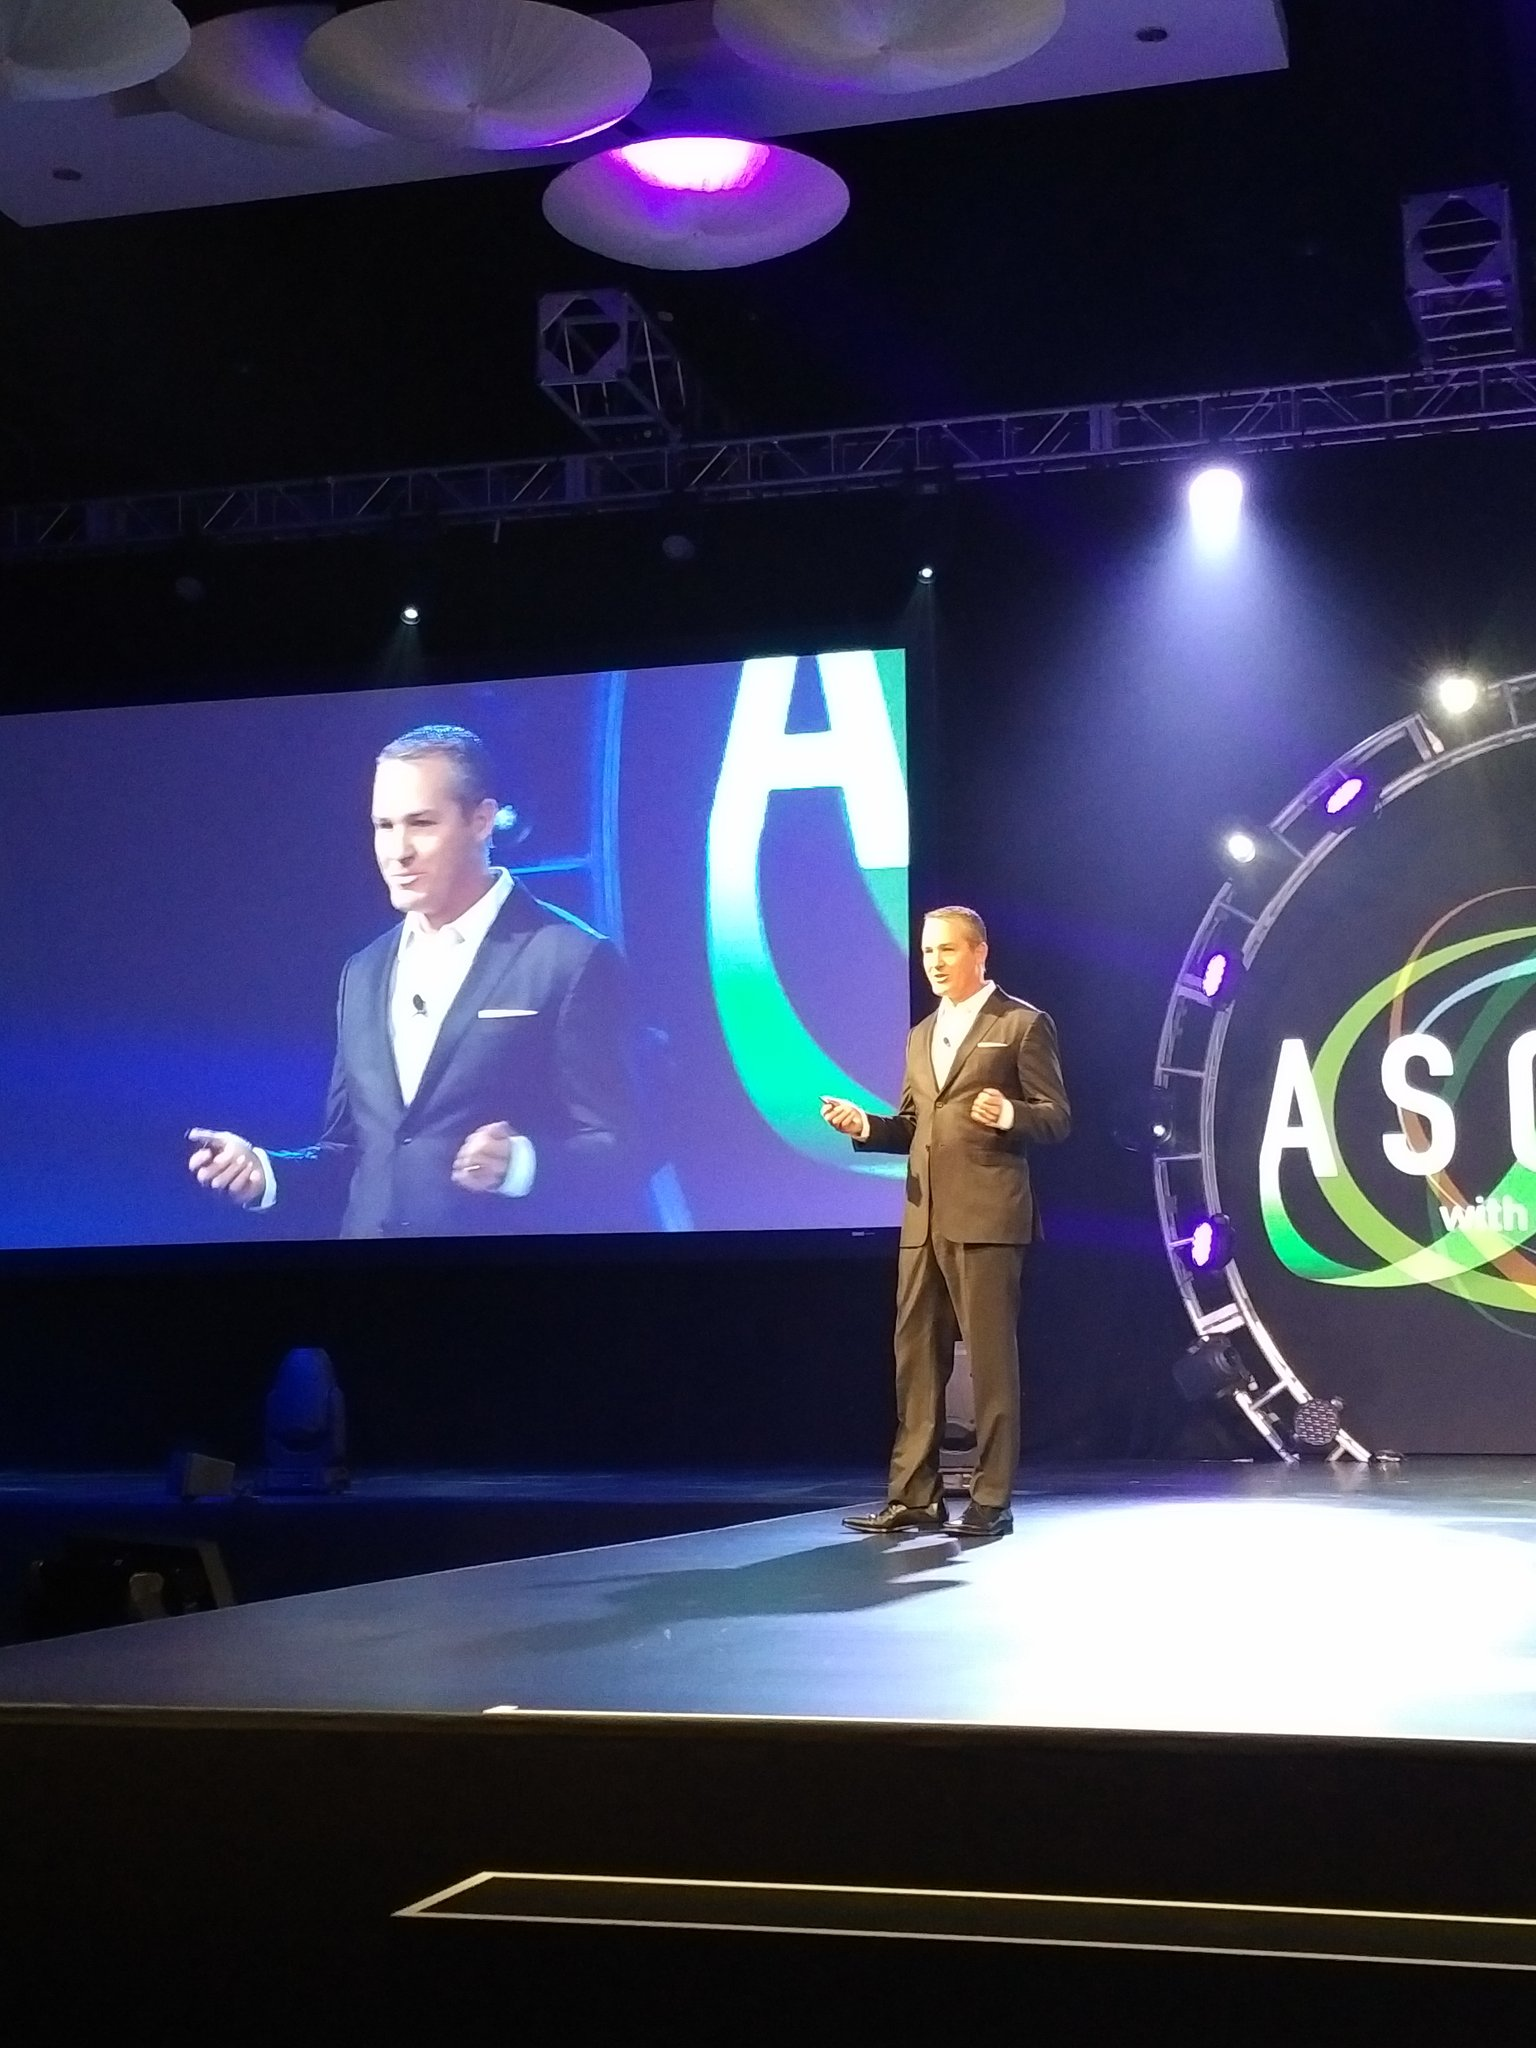 Next up -  Gleeson on strategic partnerships ... big changes are coming. #CenturyLinkAscend https://t.co/1QMrK1Qc6k